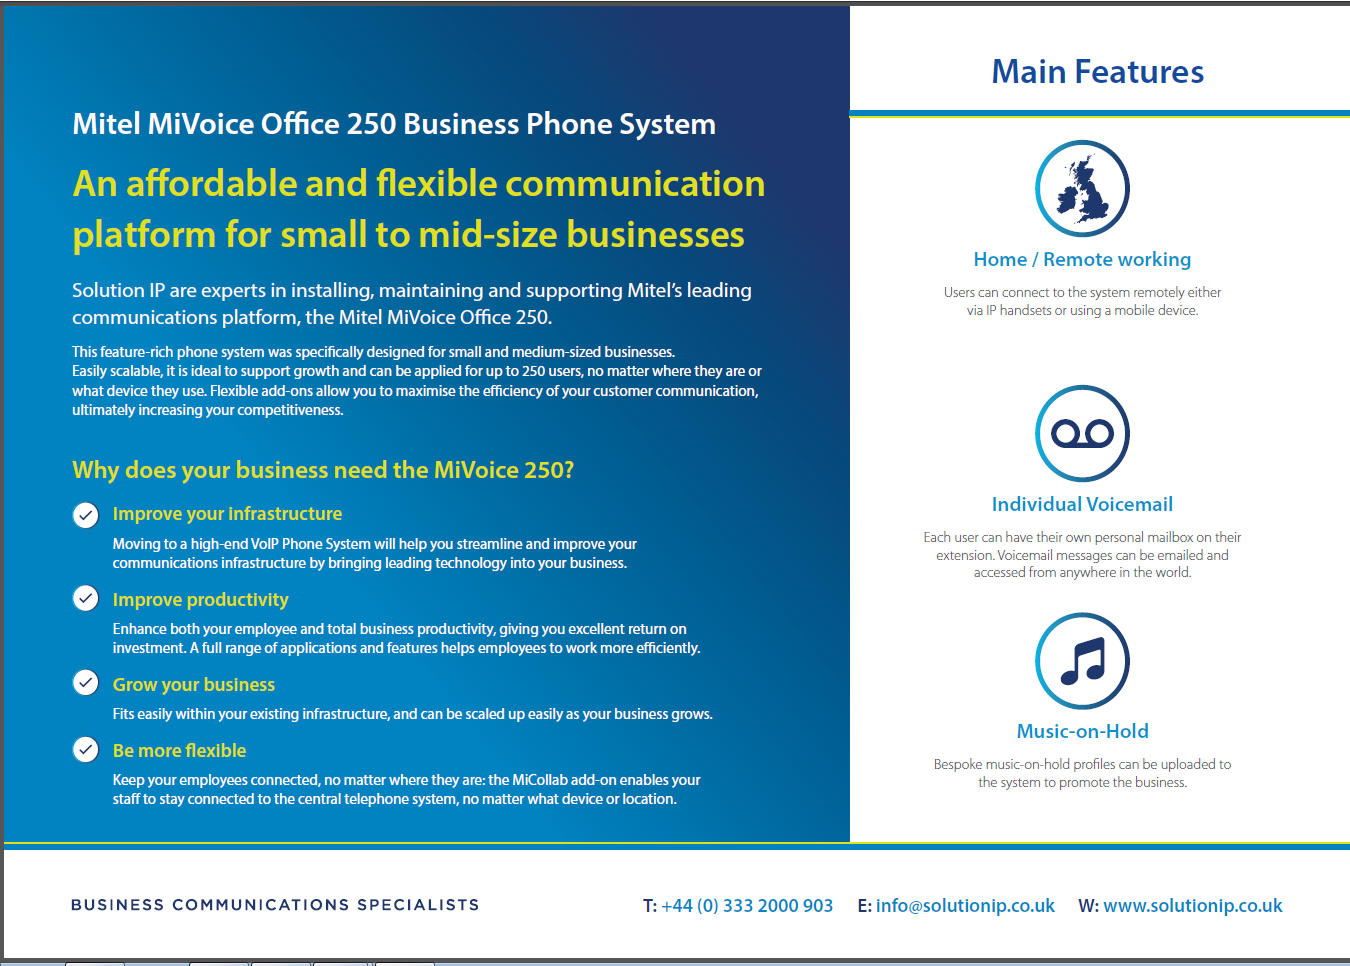 The MiVoice Office 250 Business Communications Solution